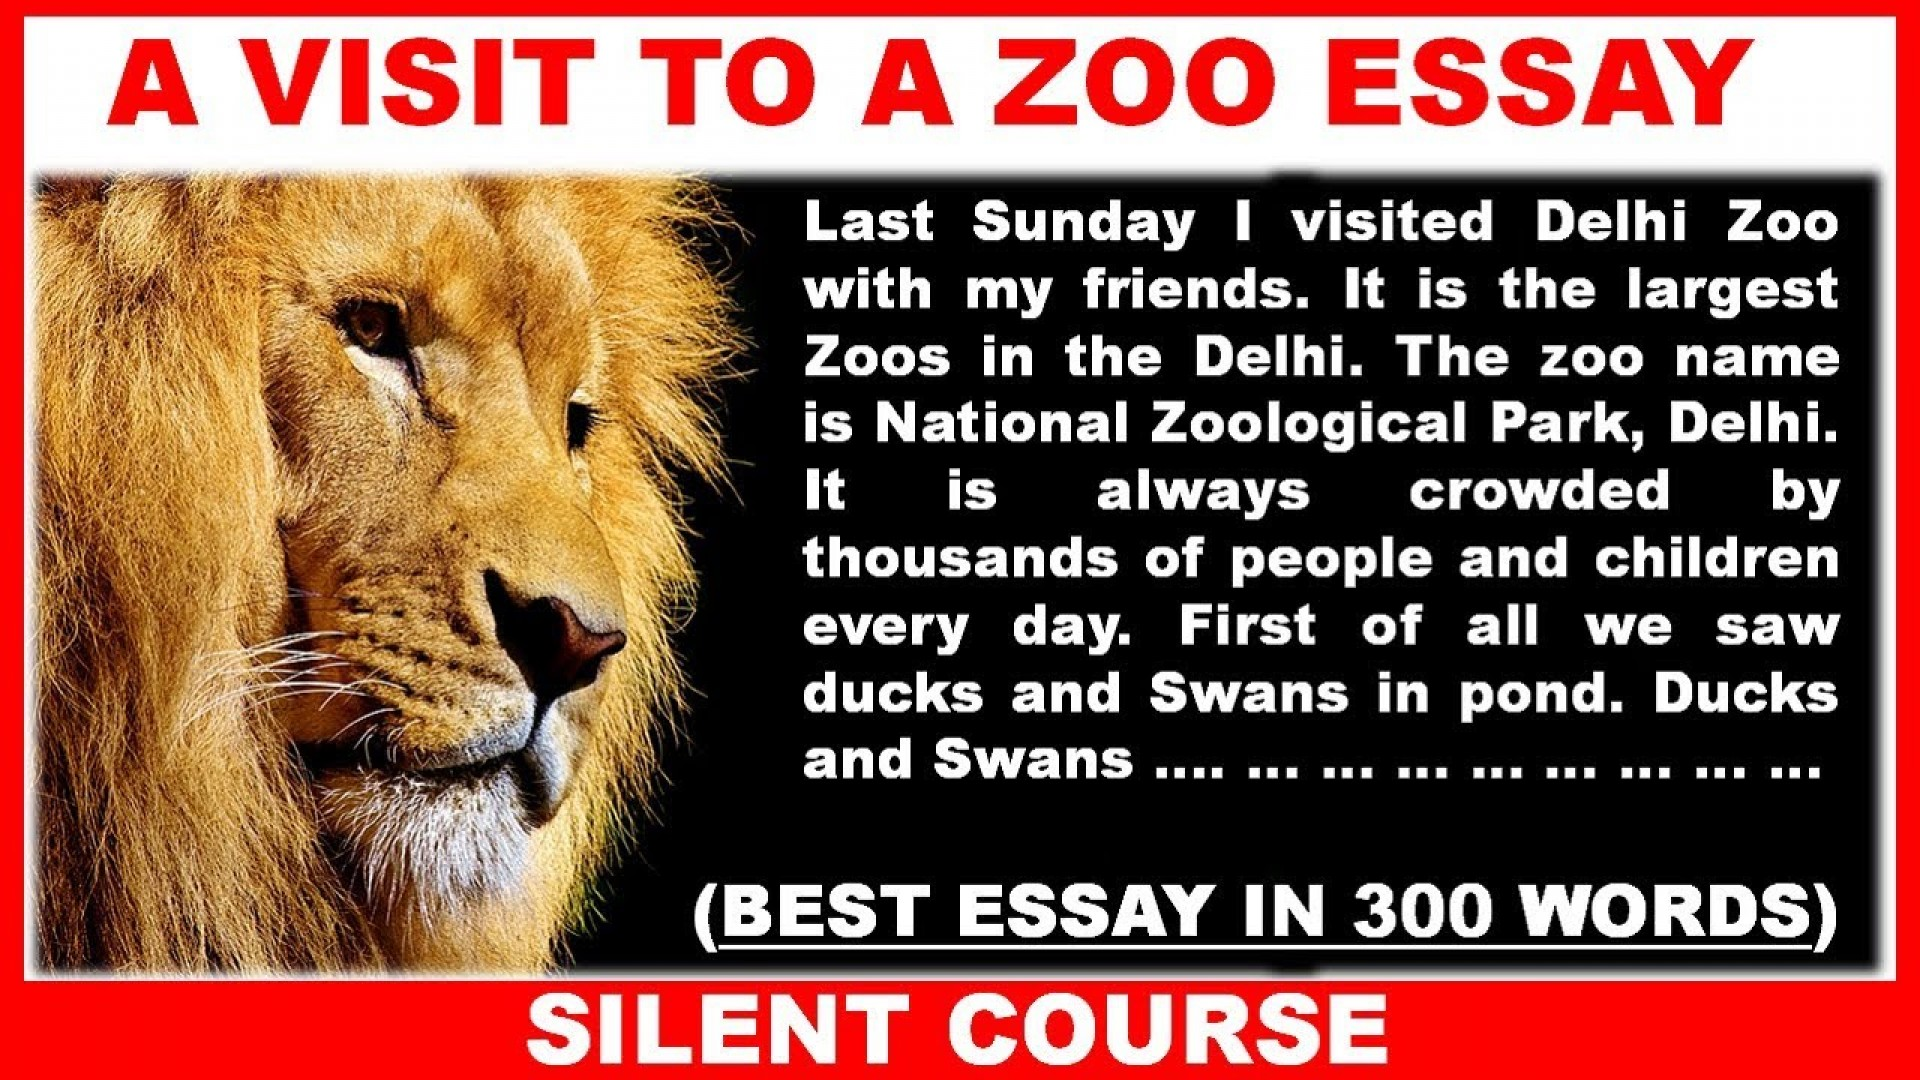 001 Essay Example Maxresdefault On Marvelous Zoo Zoos Should Not Be Banned For Class 1 In English Hindi 1920